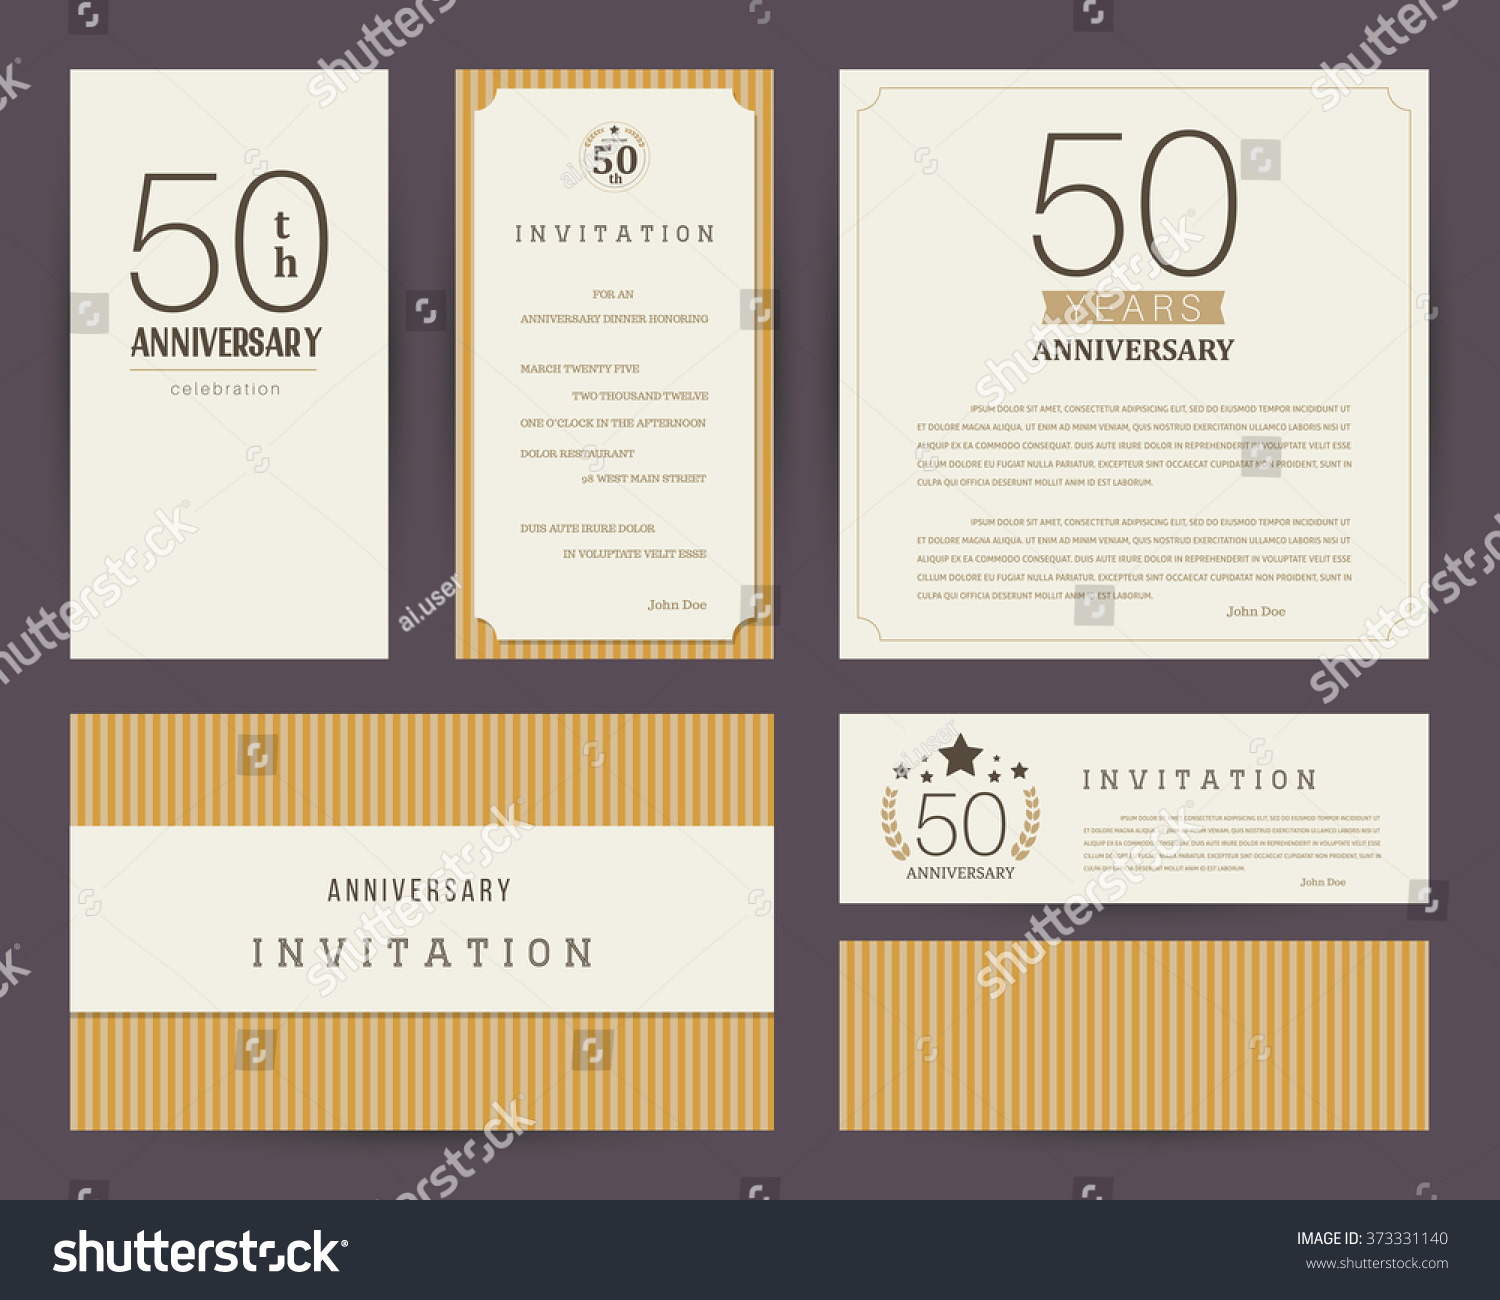 50th Anniversary Invitation Cards Template